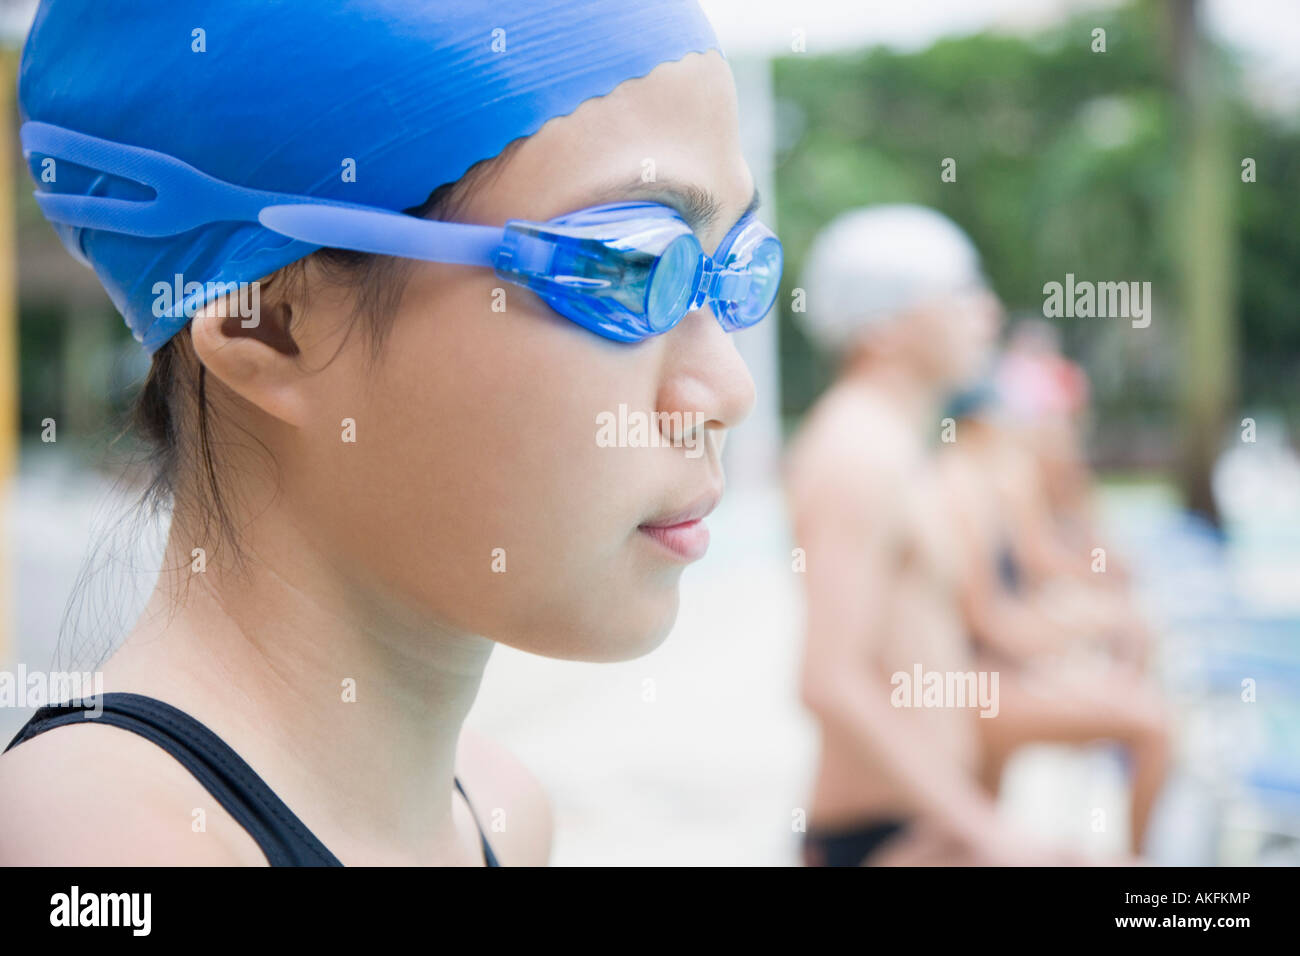 Close-up of a young woman wearing swimming goggles and standing at a poolside - Stock Image